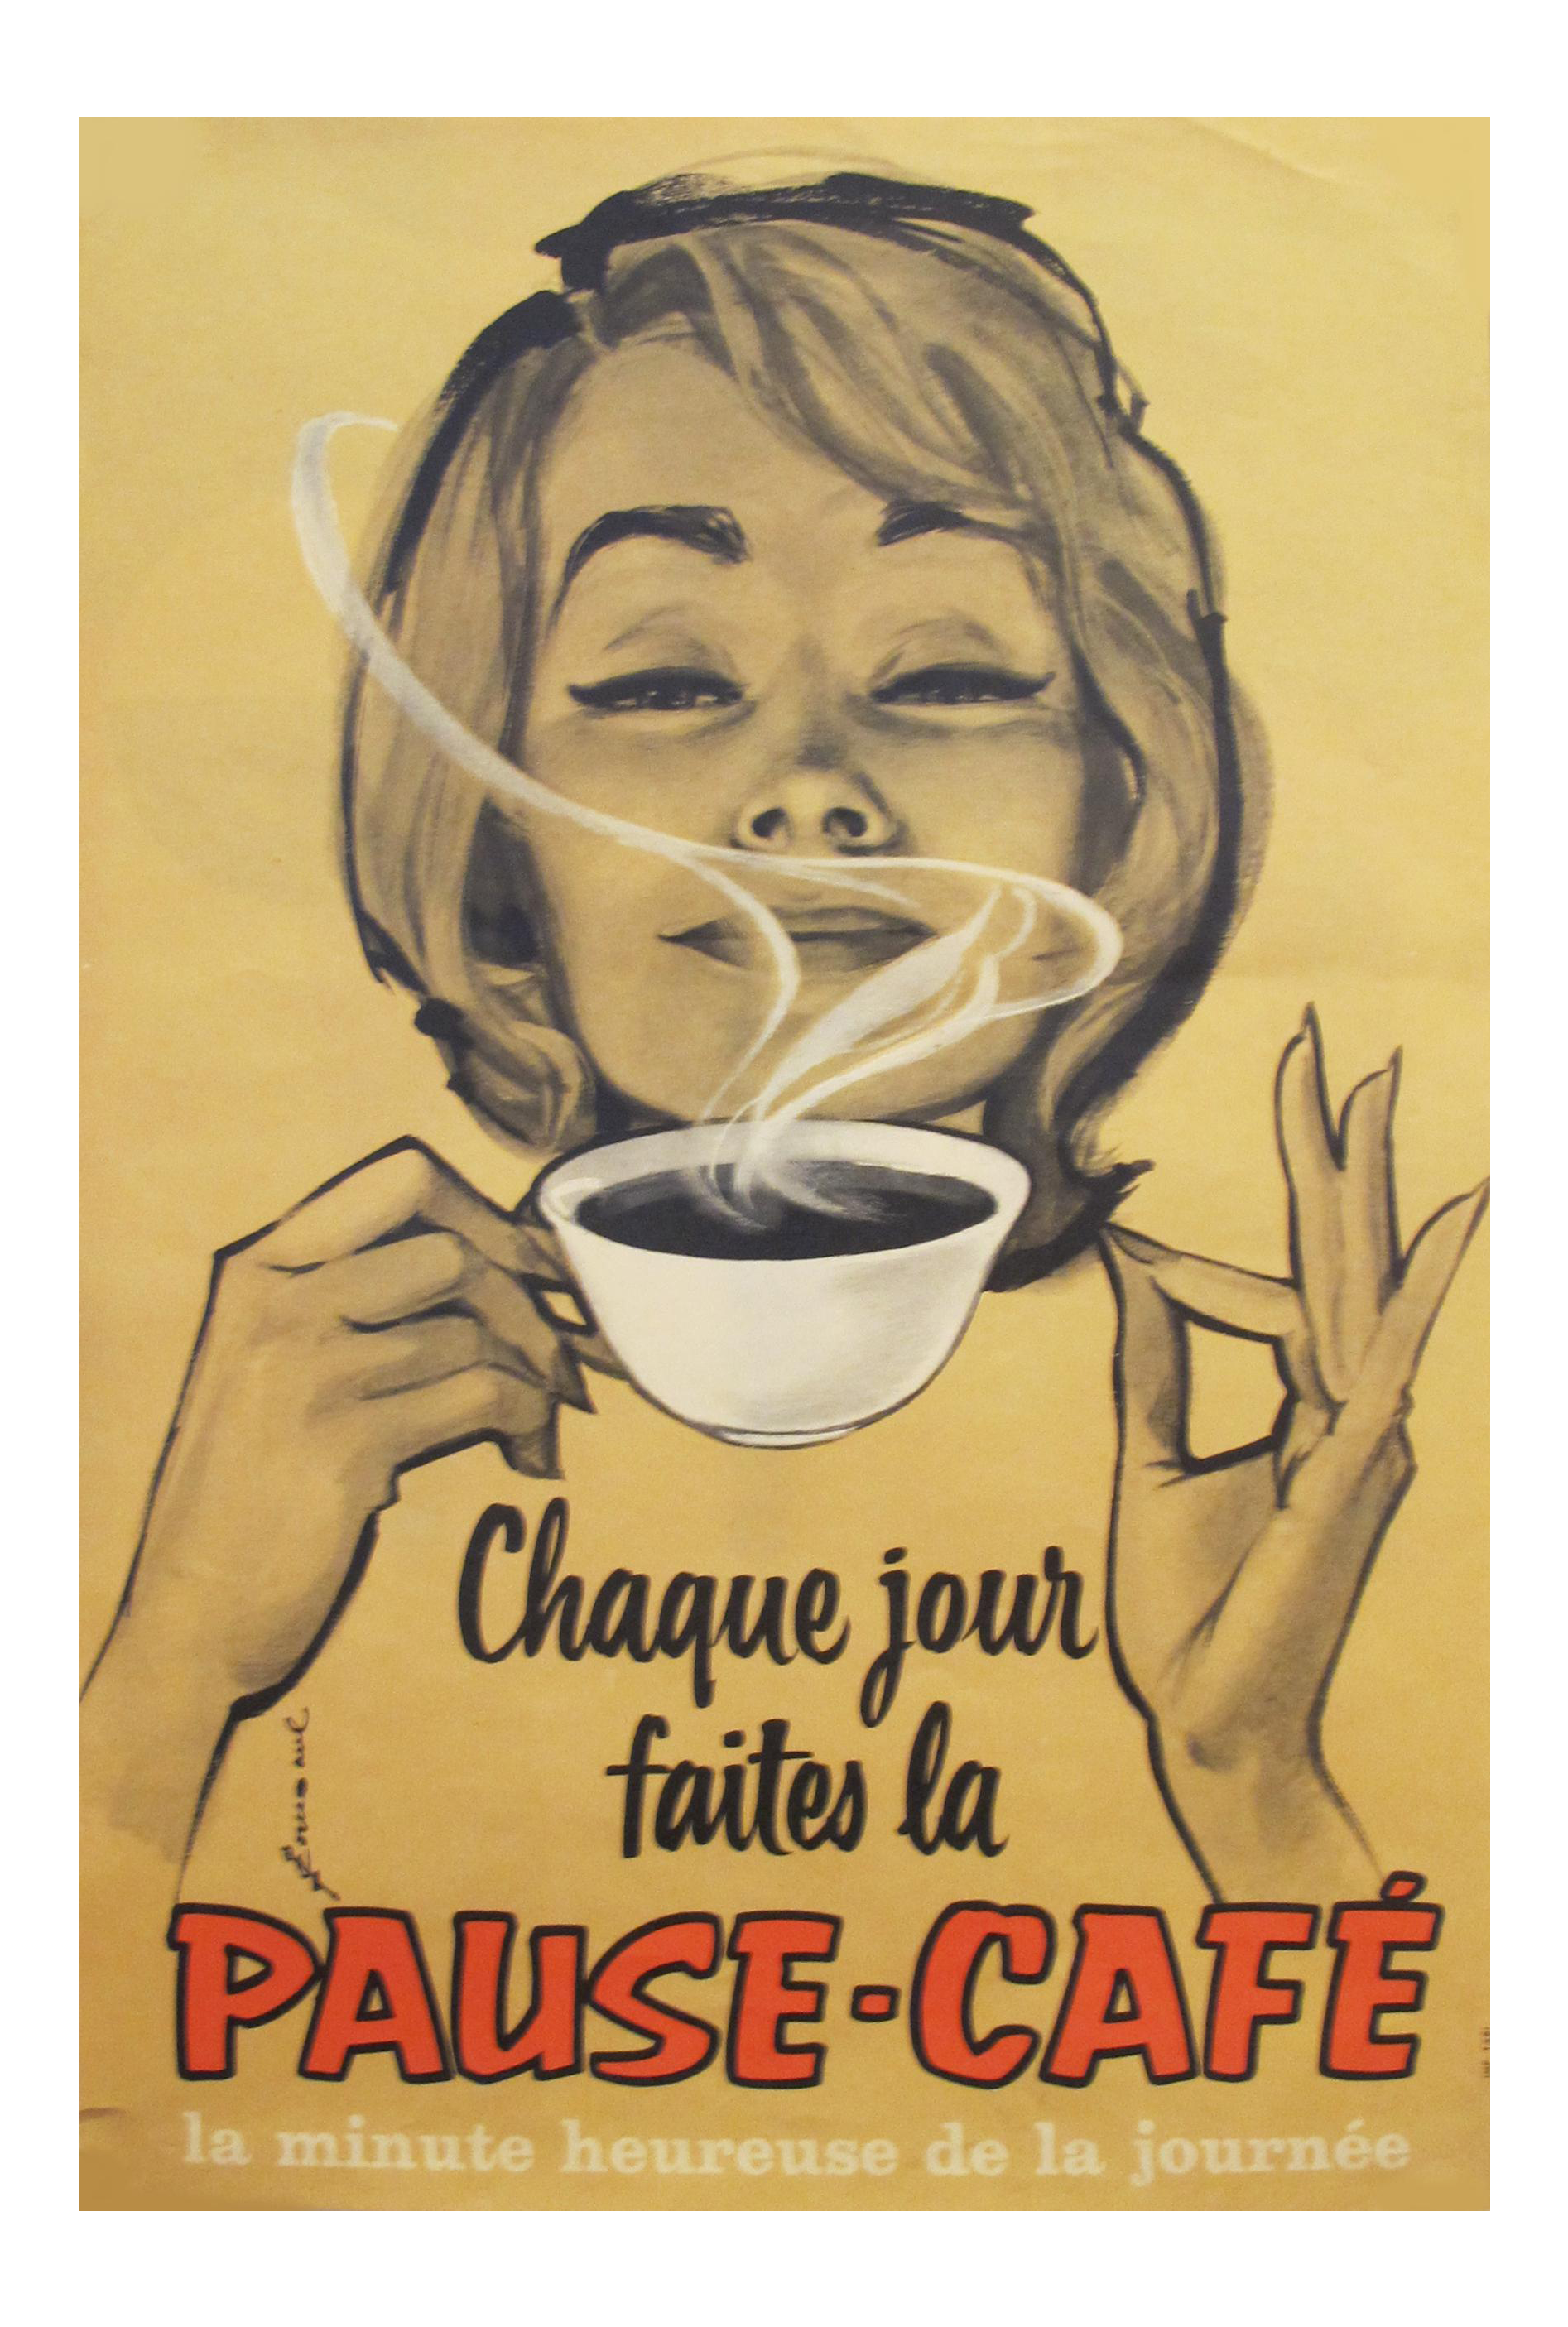 1950s Vintage French Coffee Poster, Pause Cafe | Chairish